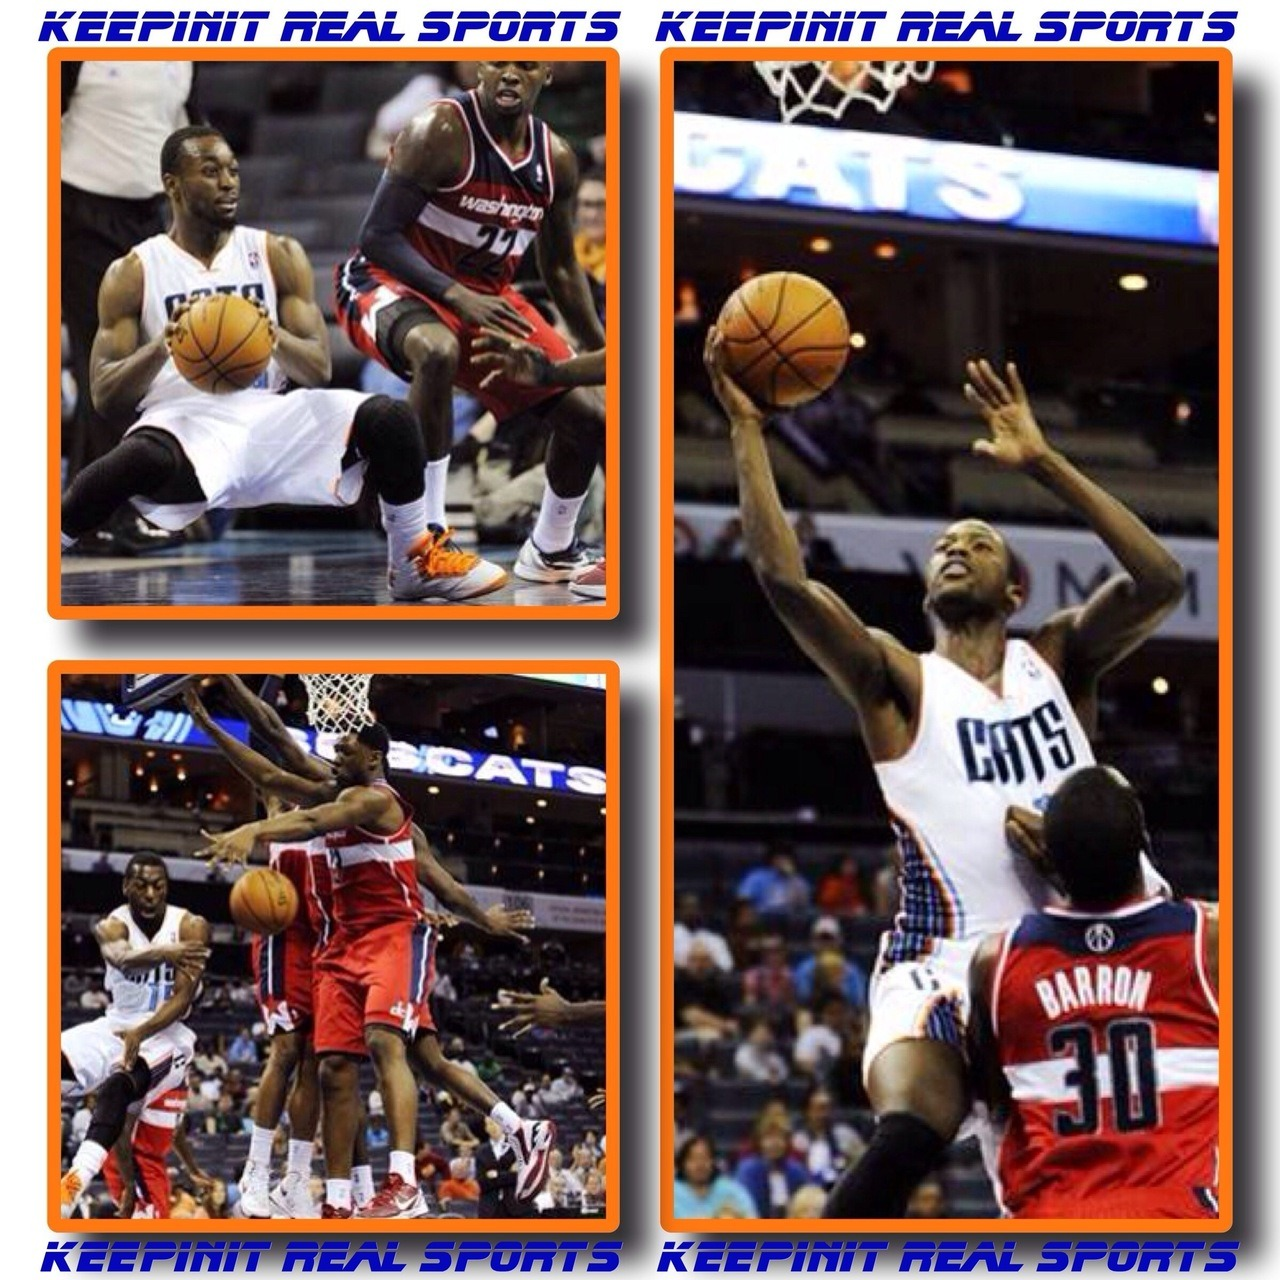 NBA: Wizards - vs - BobcatsNBA: Pre-Season Wizards 88 (0-1, 0-0 away) Bobcats 100 (1-0, 1-0 home) FINAL Top PerformersWashing…View Postshared via WordPress.com